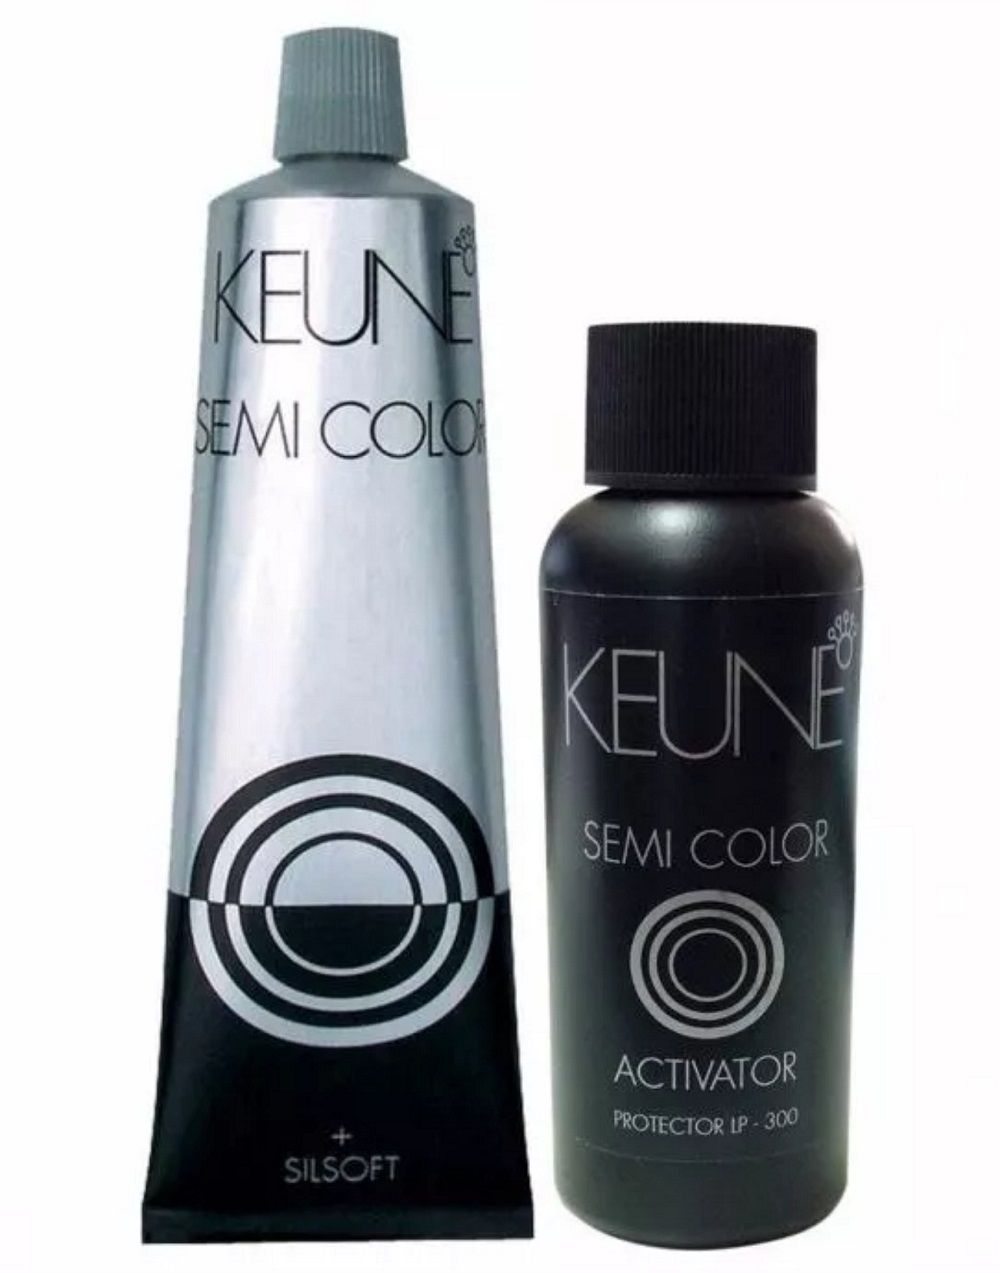 Kit Keune Semi Color 60ml - Cor 8.4 - Louro Claro Cobre + Ativador 60ml